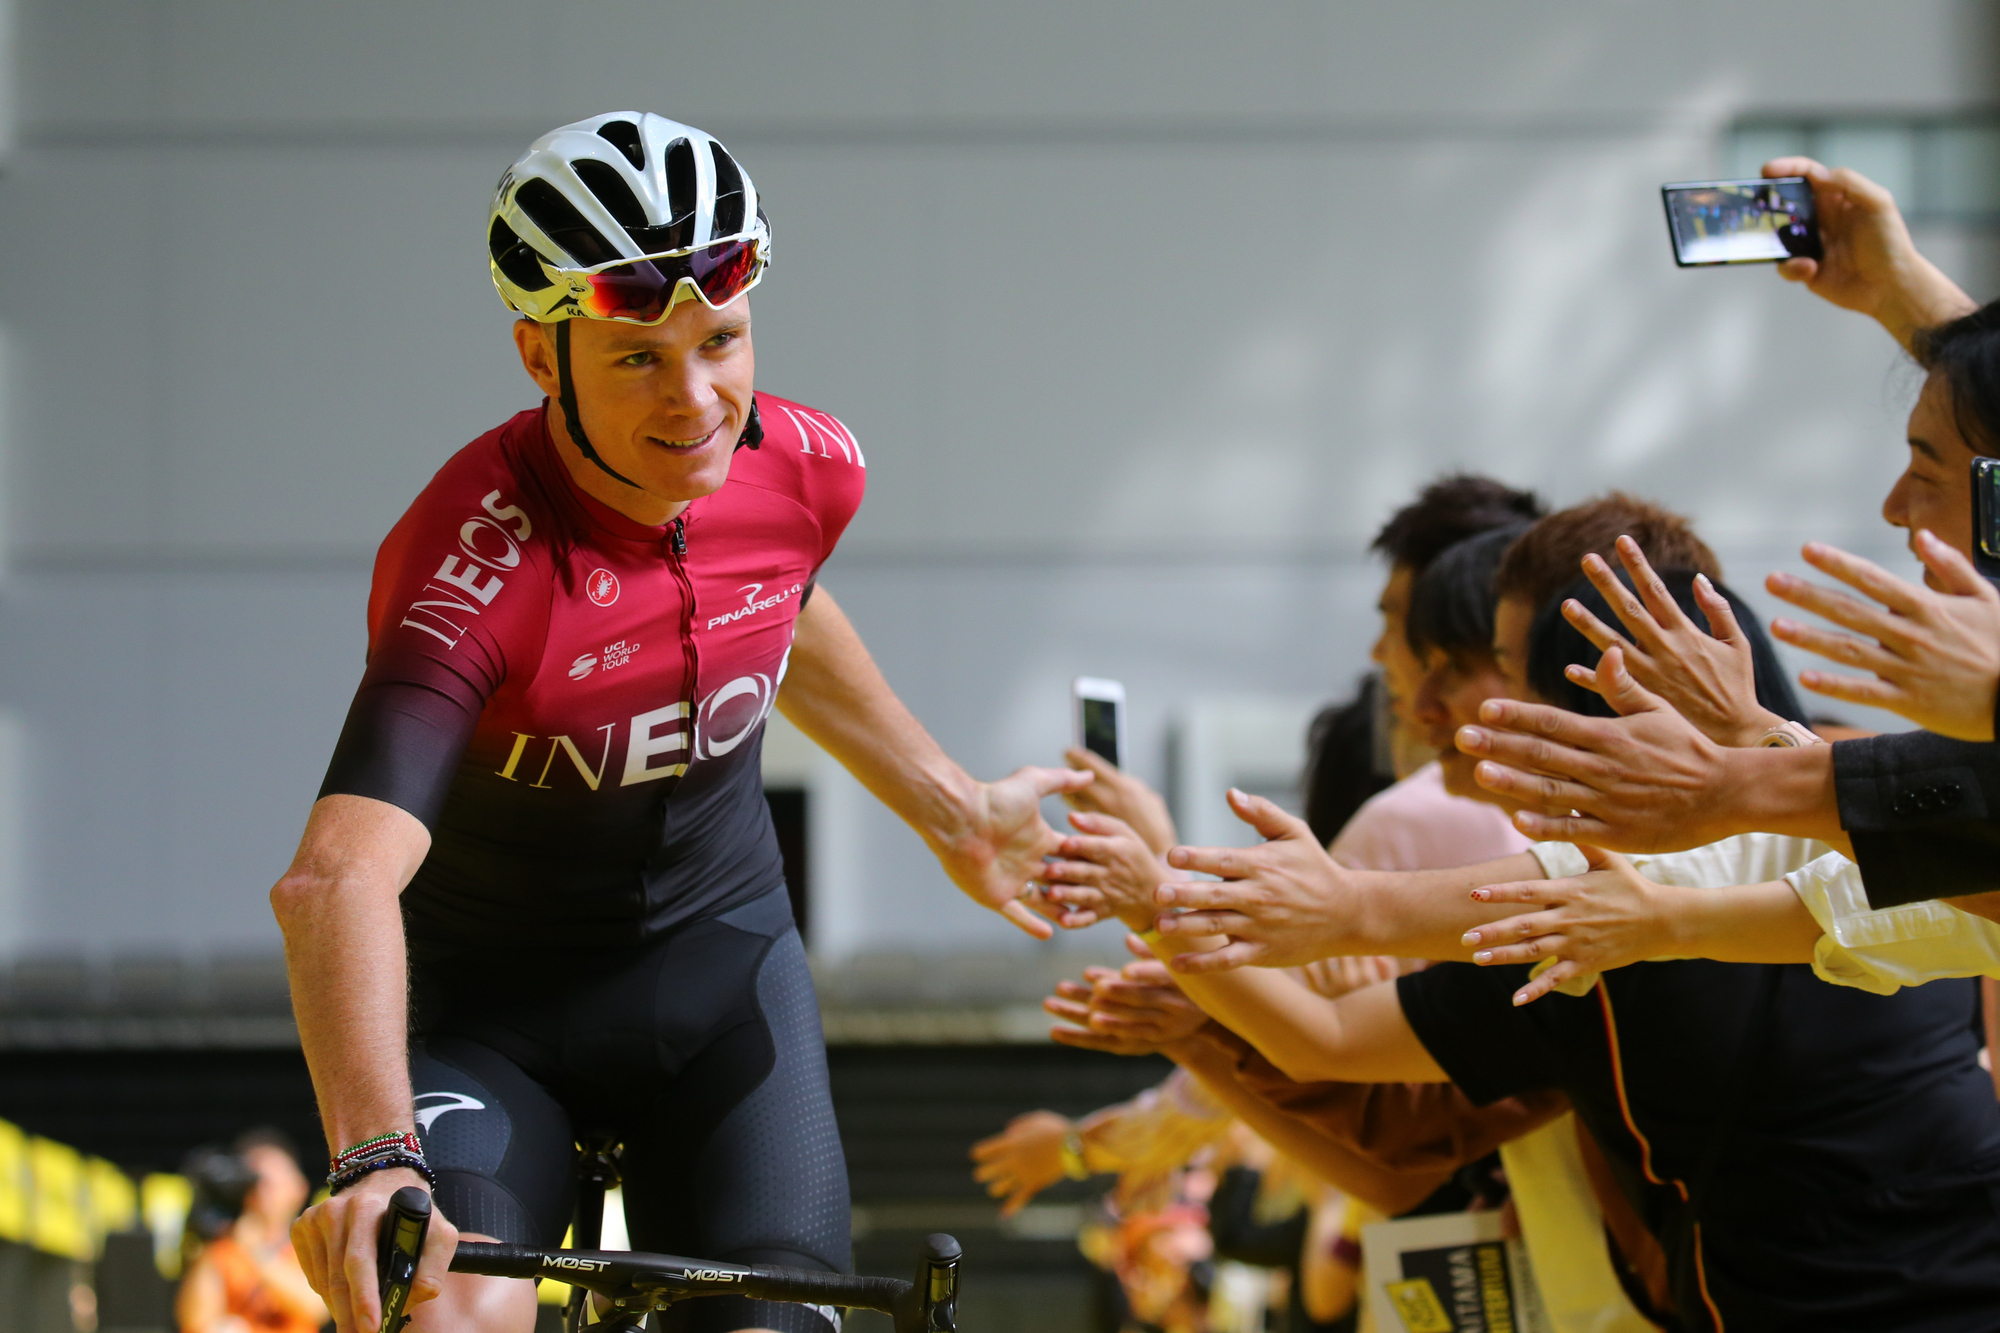 Chris Froome leaves Ineos for Israel Start-Up Nation | Cyclingnews